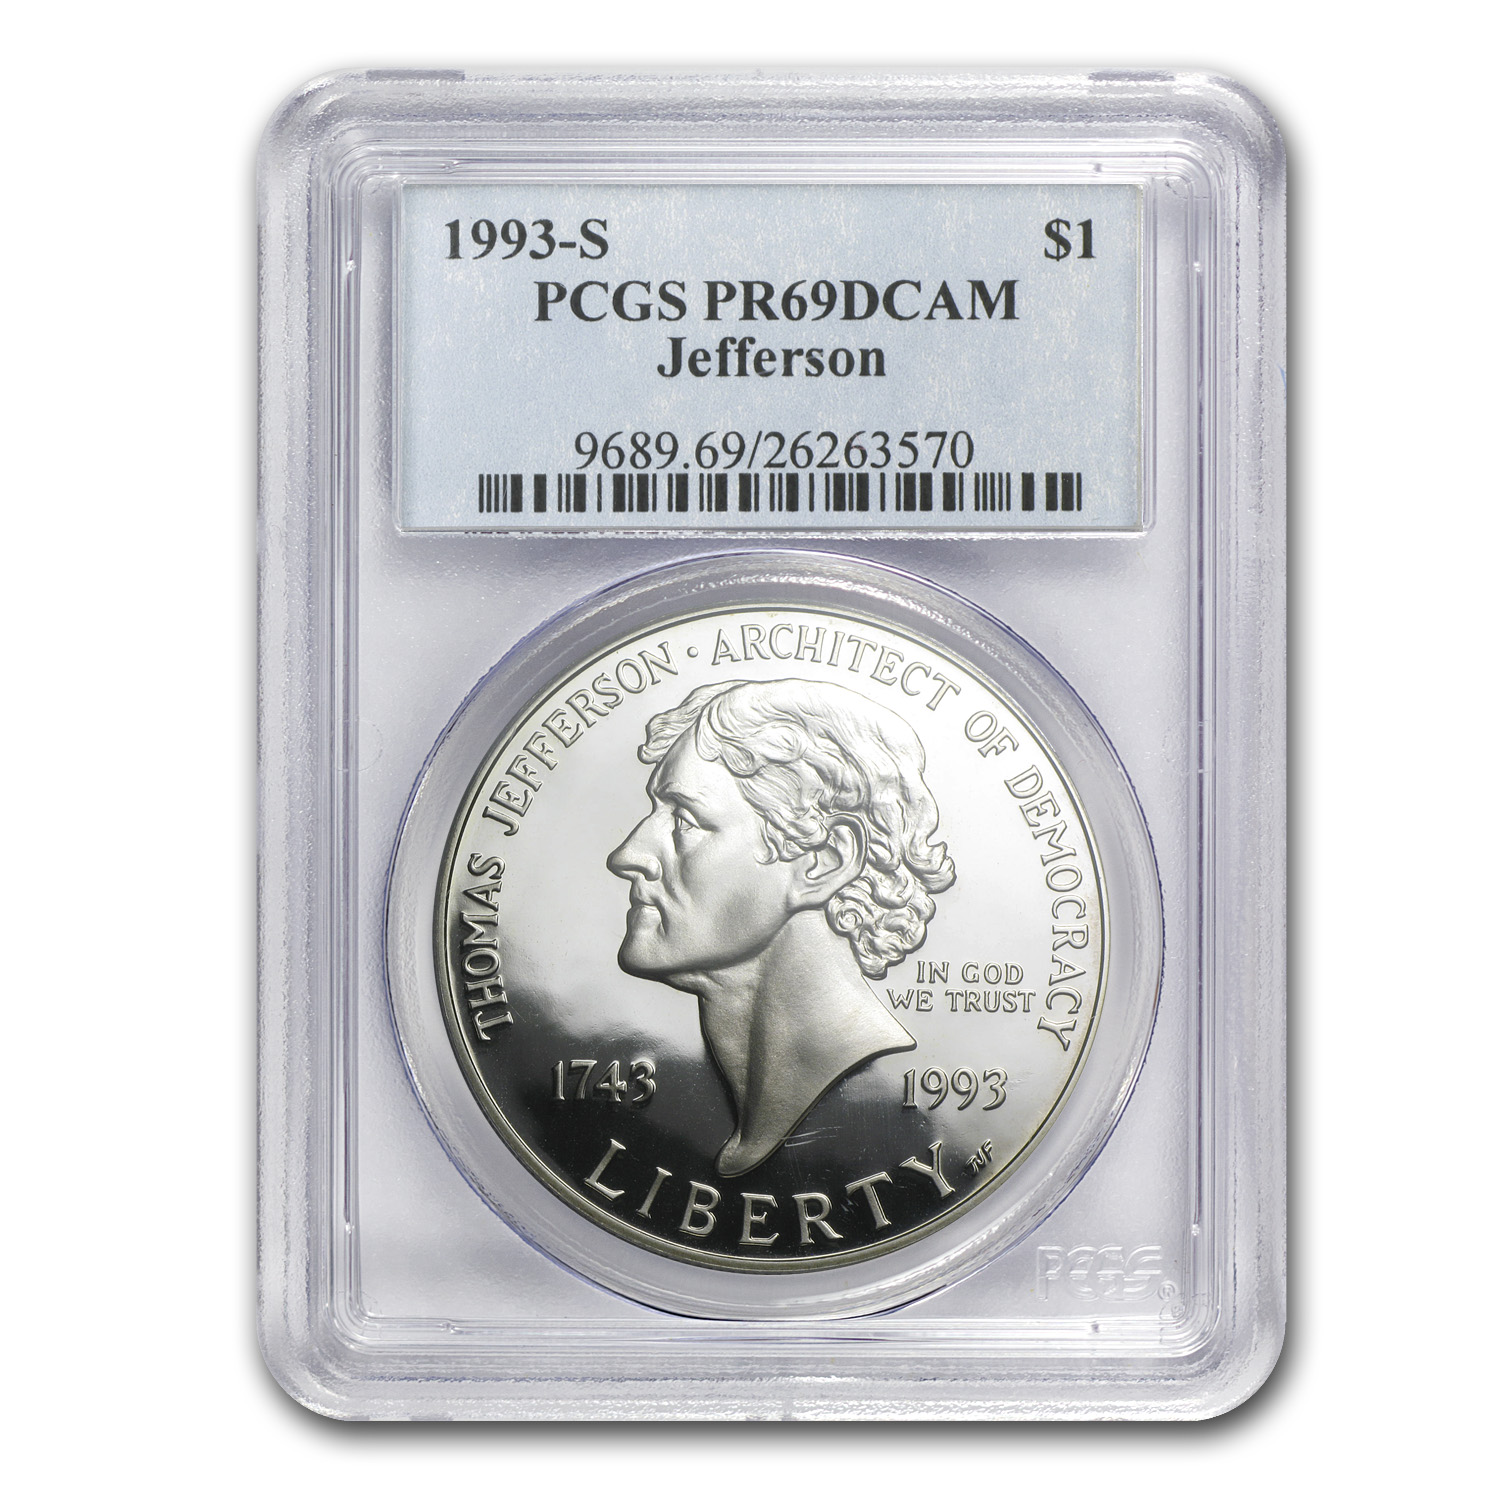 1993-S Jefferson 250th Anniv $1 Silver Commem PR-69 PCGS